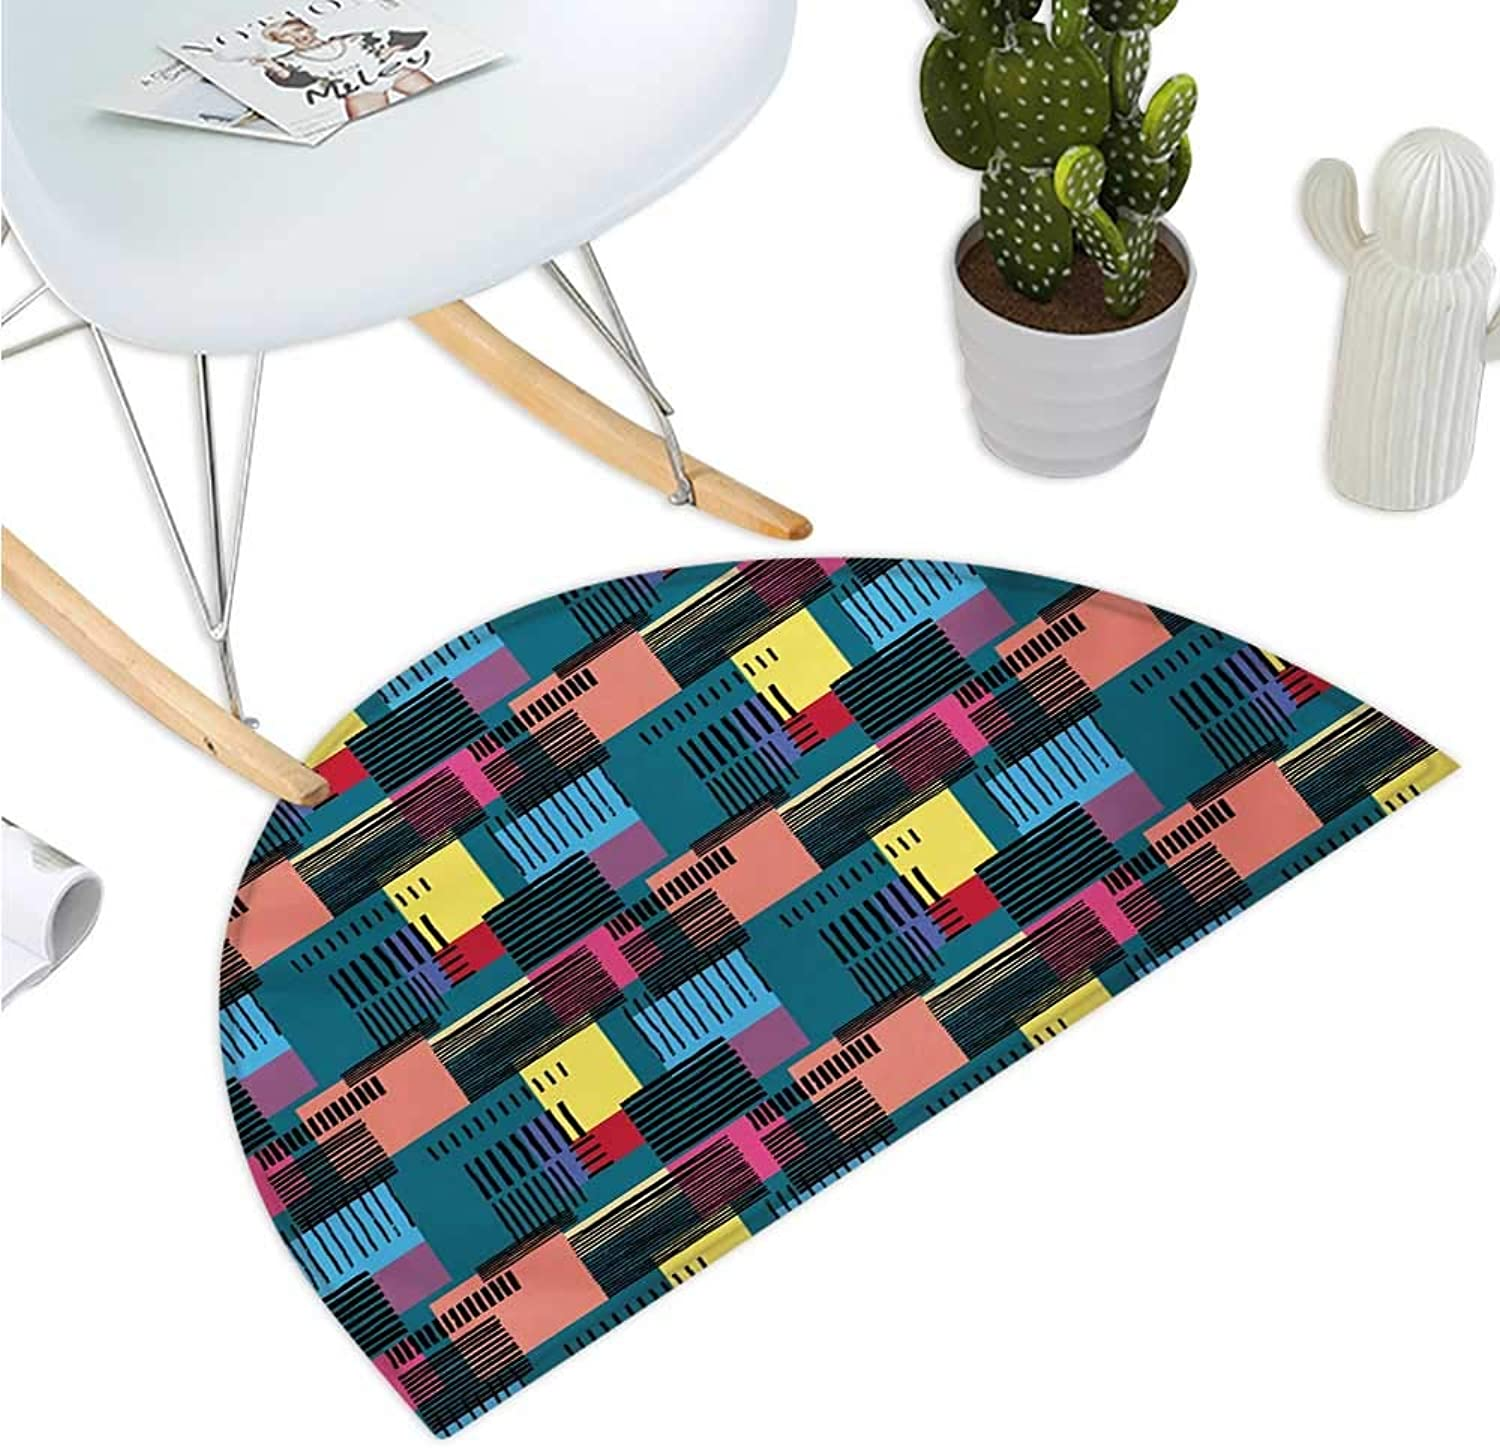 Retro Semicircle Doormat Hand Drawn Vintage Composition of Geometric Shapes Squares Rectangles and Stripes Halfmoon doormats H 35.4  xD 53.1  Multicolor